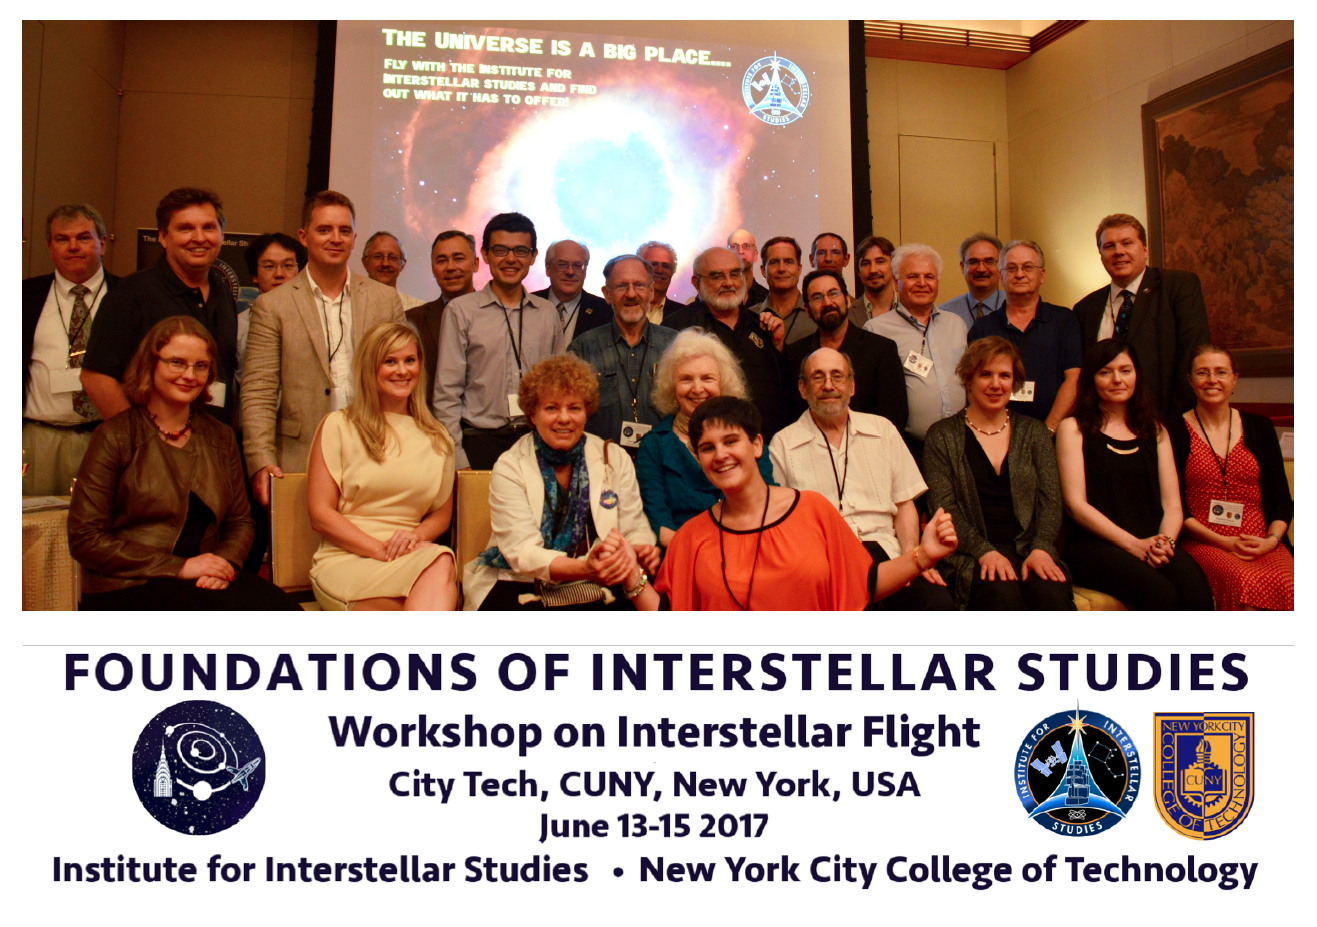 Above: Institute for Interstellar Studies, New York City College of Technology, CUNY, (Click to zoom.)